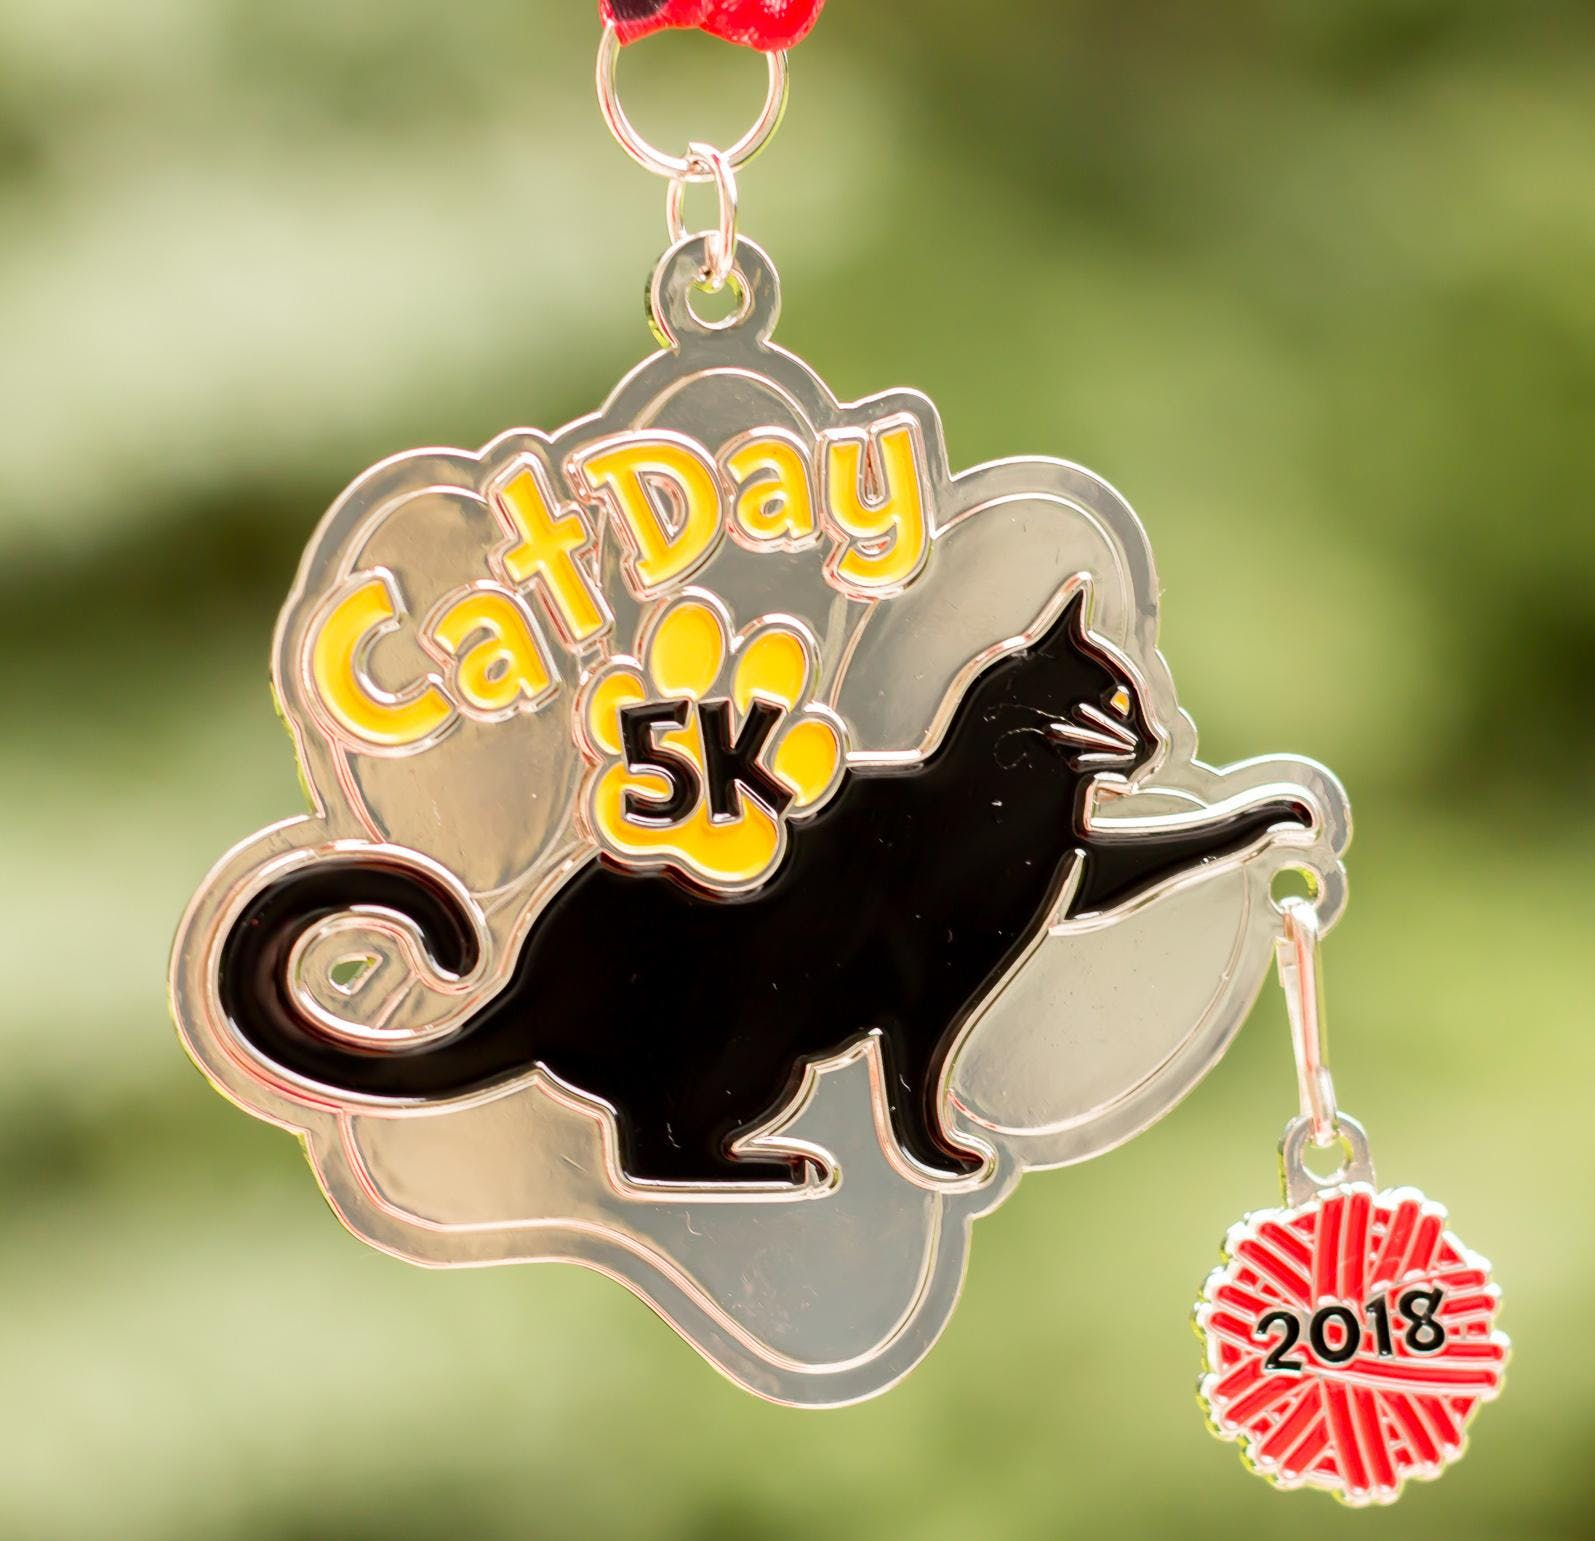 Now Only $10 Cat Day 5K & 10K - Scottsdale